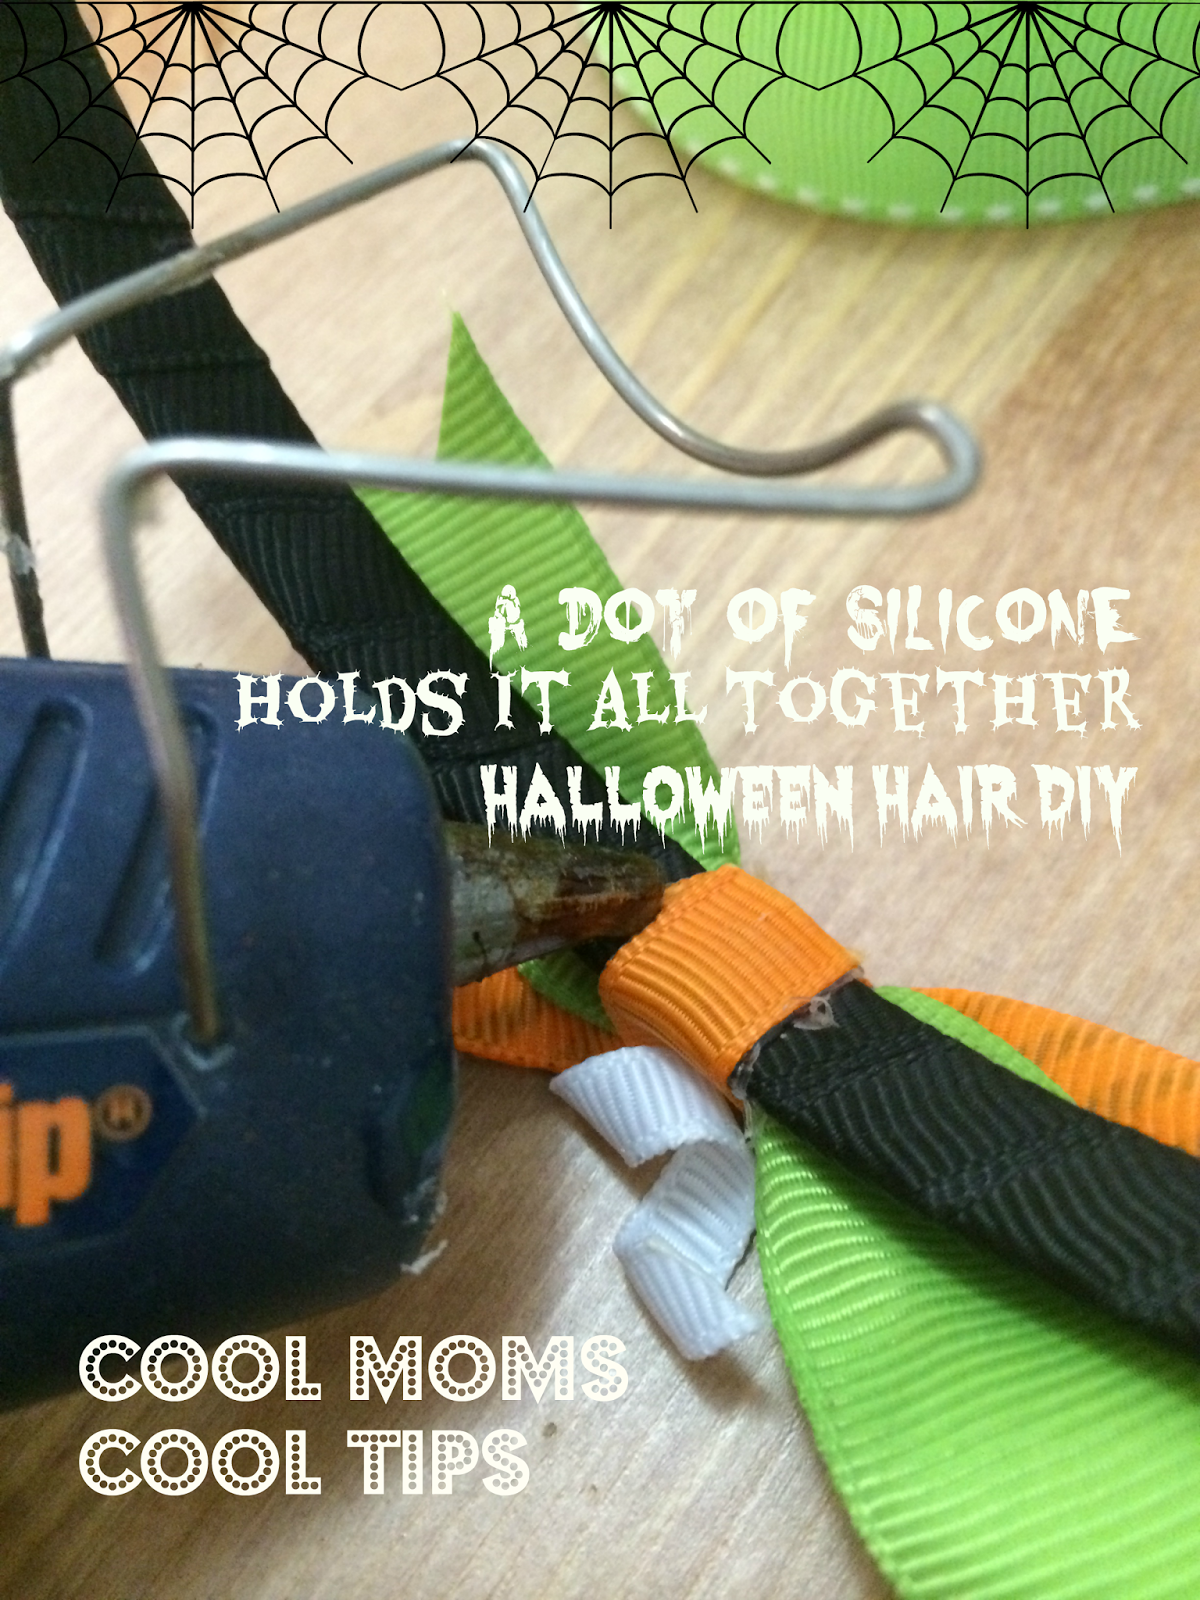 cool moms cool tips DIY Halloween Headband proces